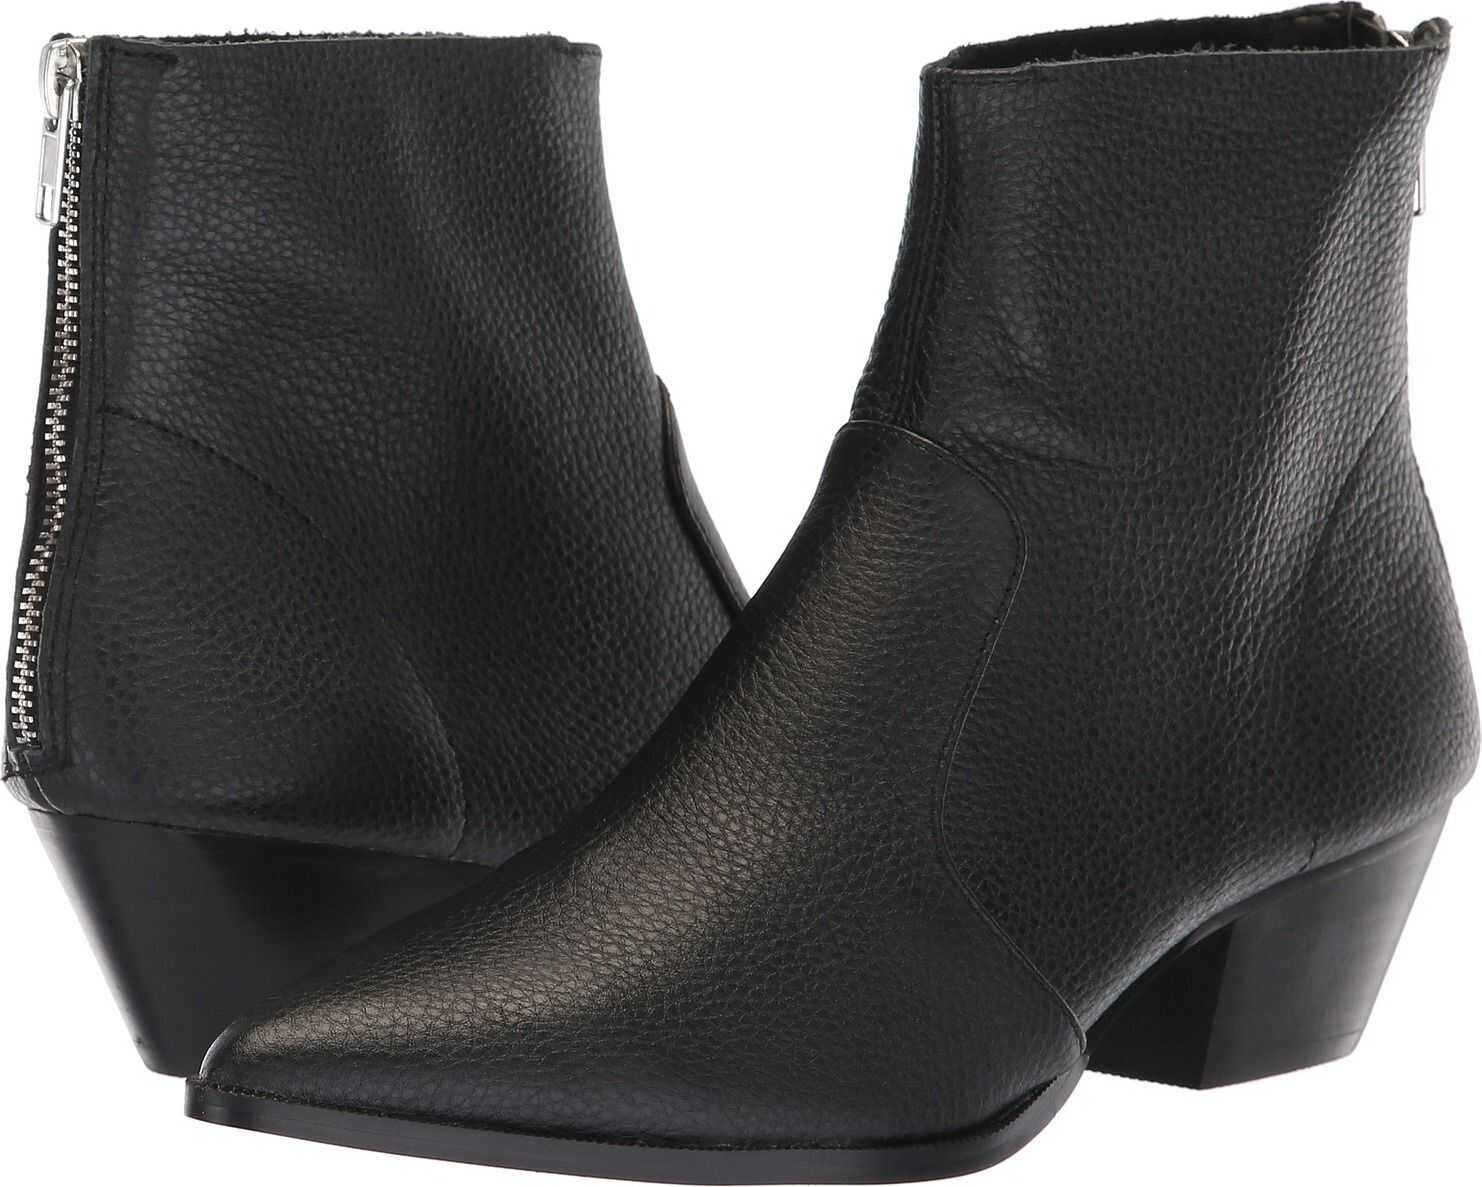 Steve Madden Café Bootie Black Leather